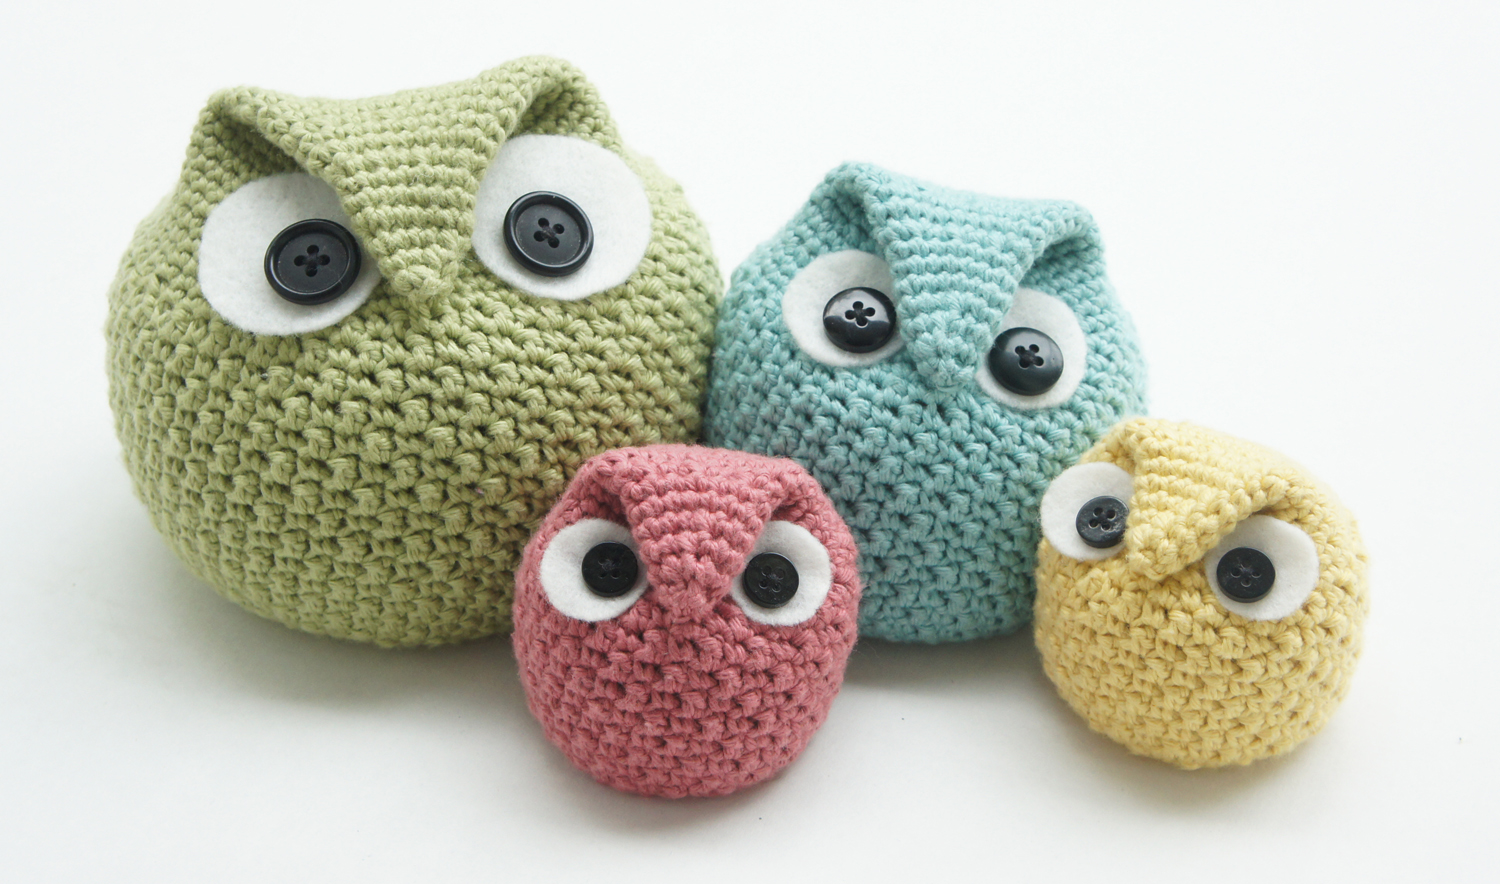 Amigurumi Owl Family : knot sew cute design shop: new crochet pattern - chubby ...